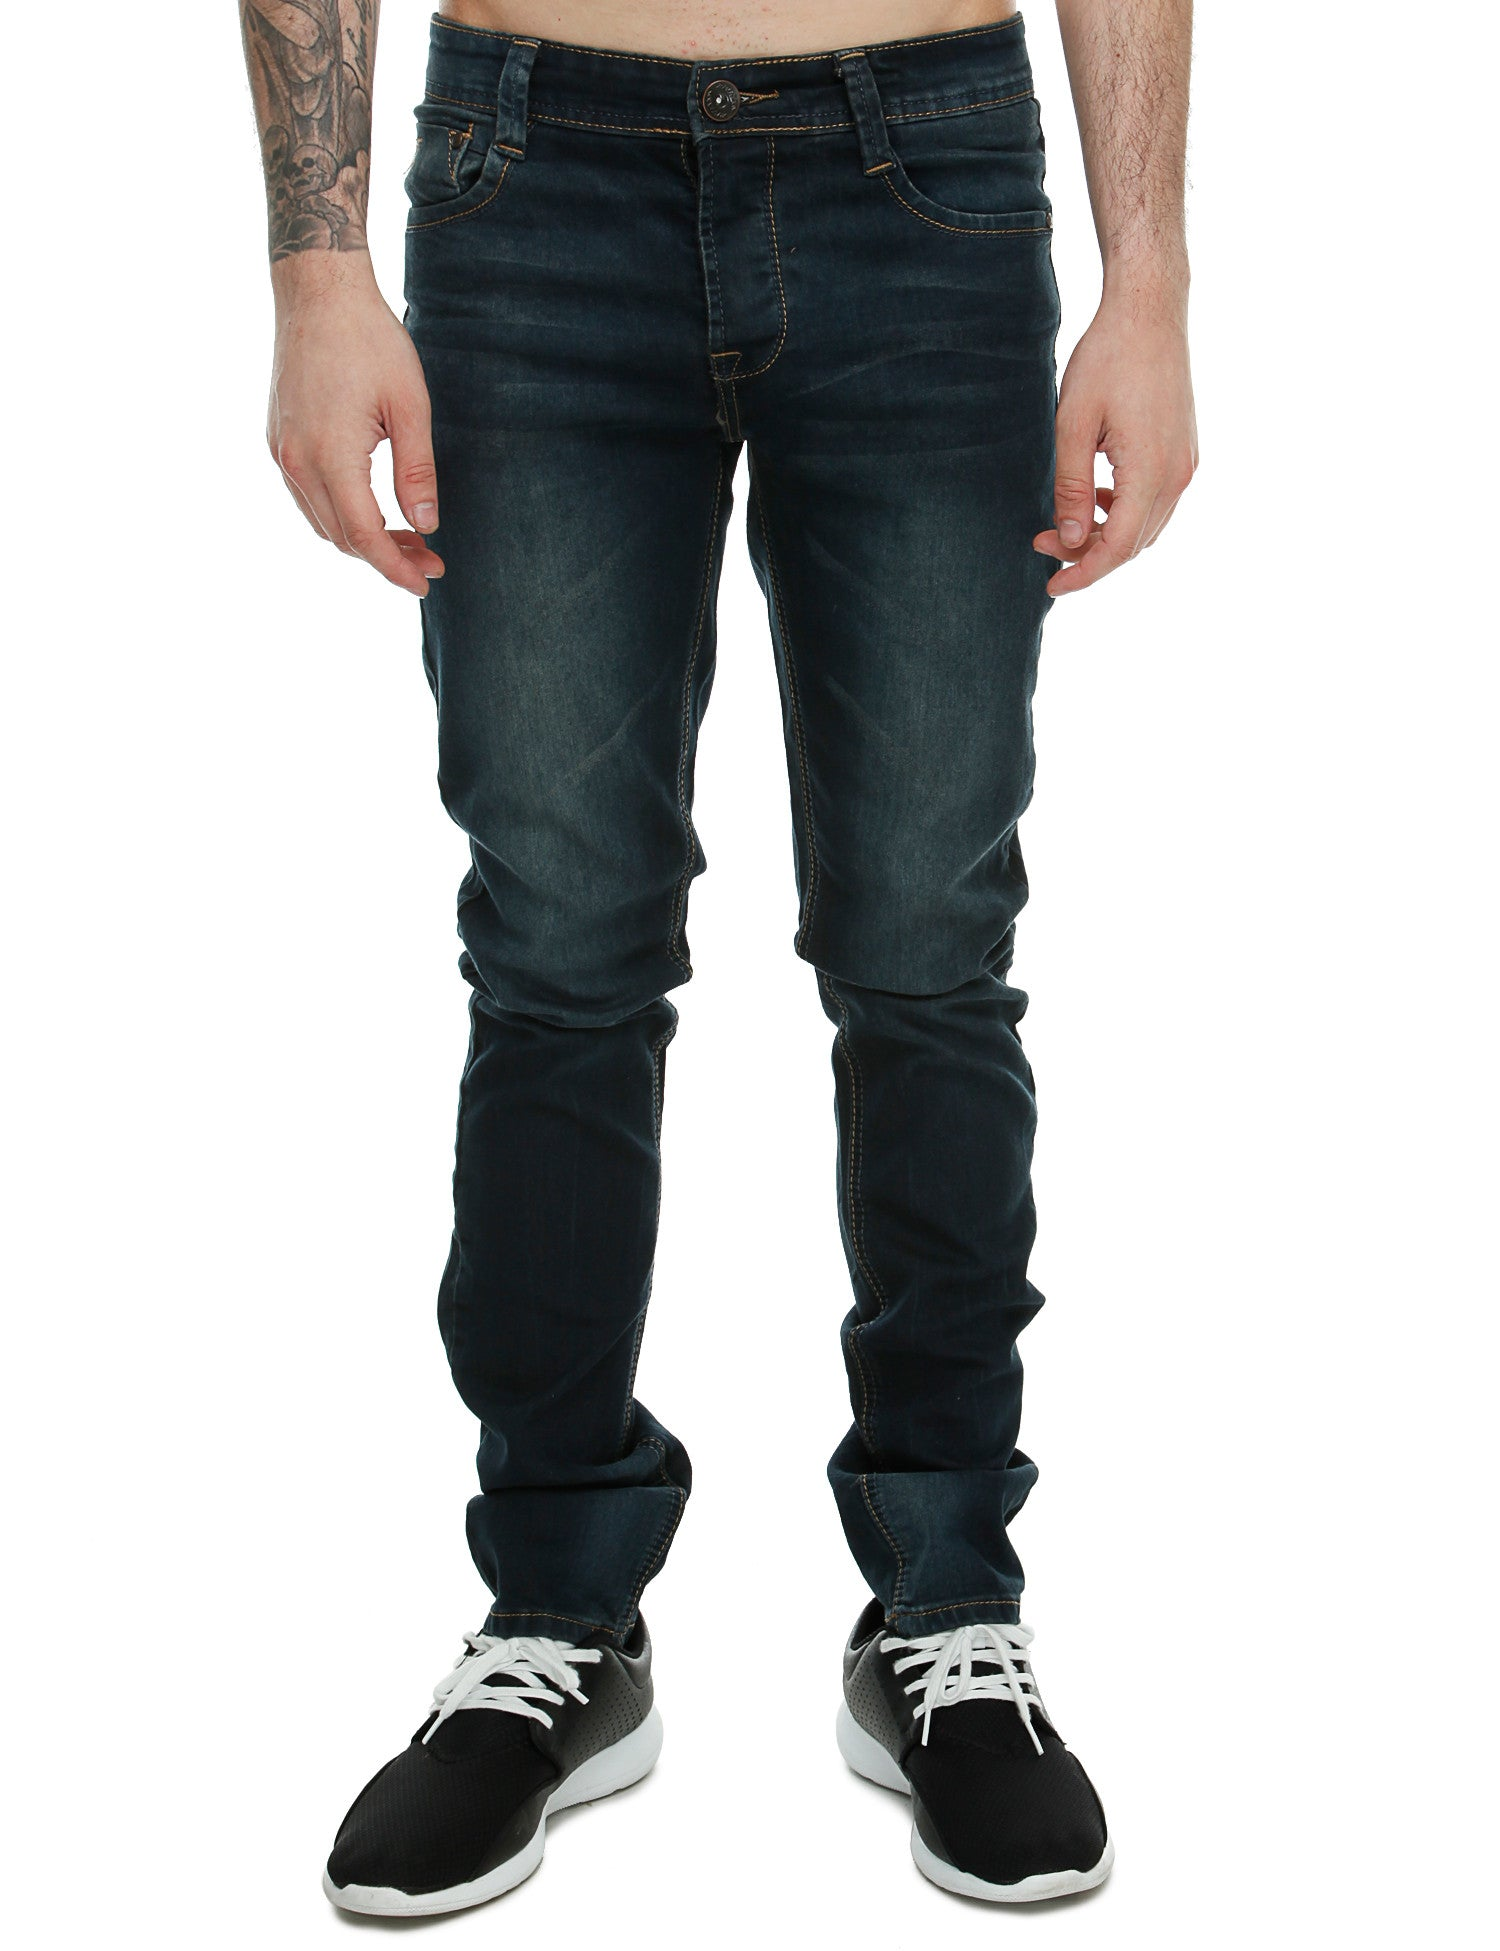 Rivaldi Slim Fit Jeans CRUZ Black  Blue